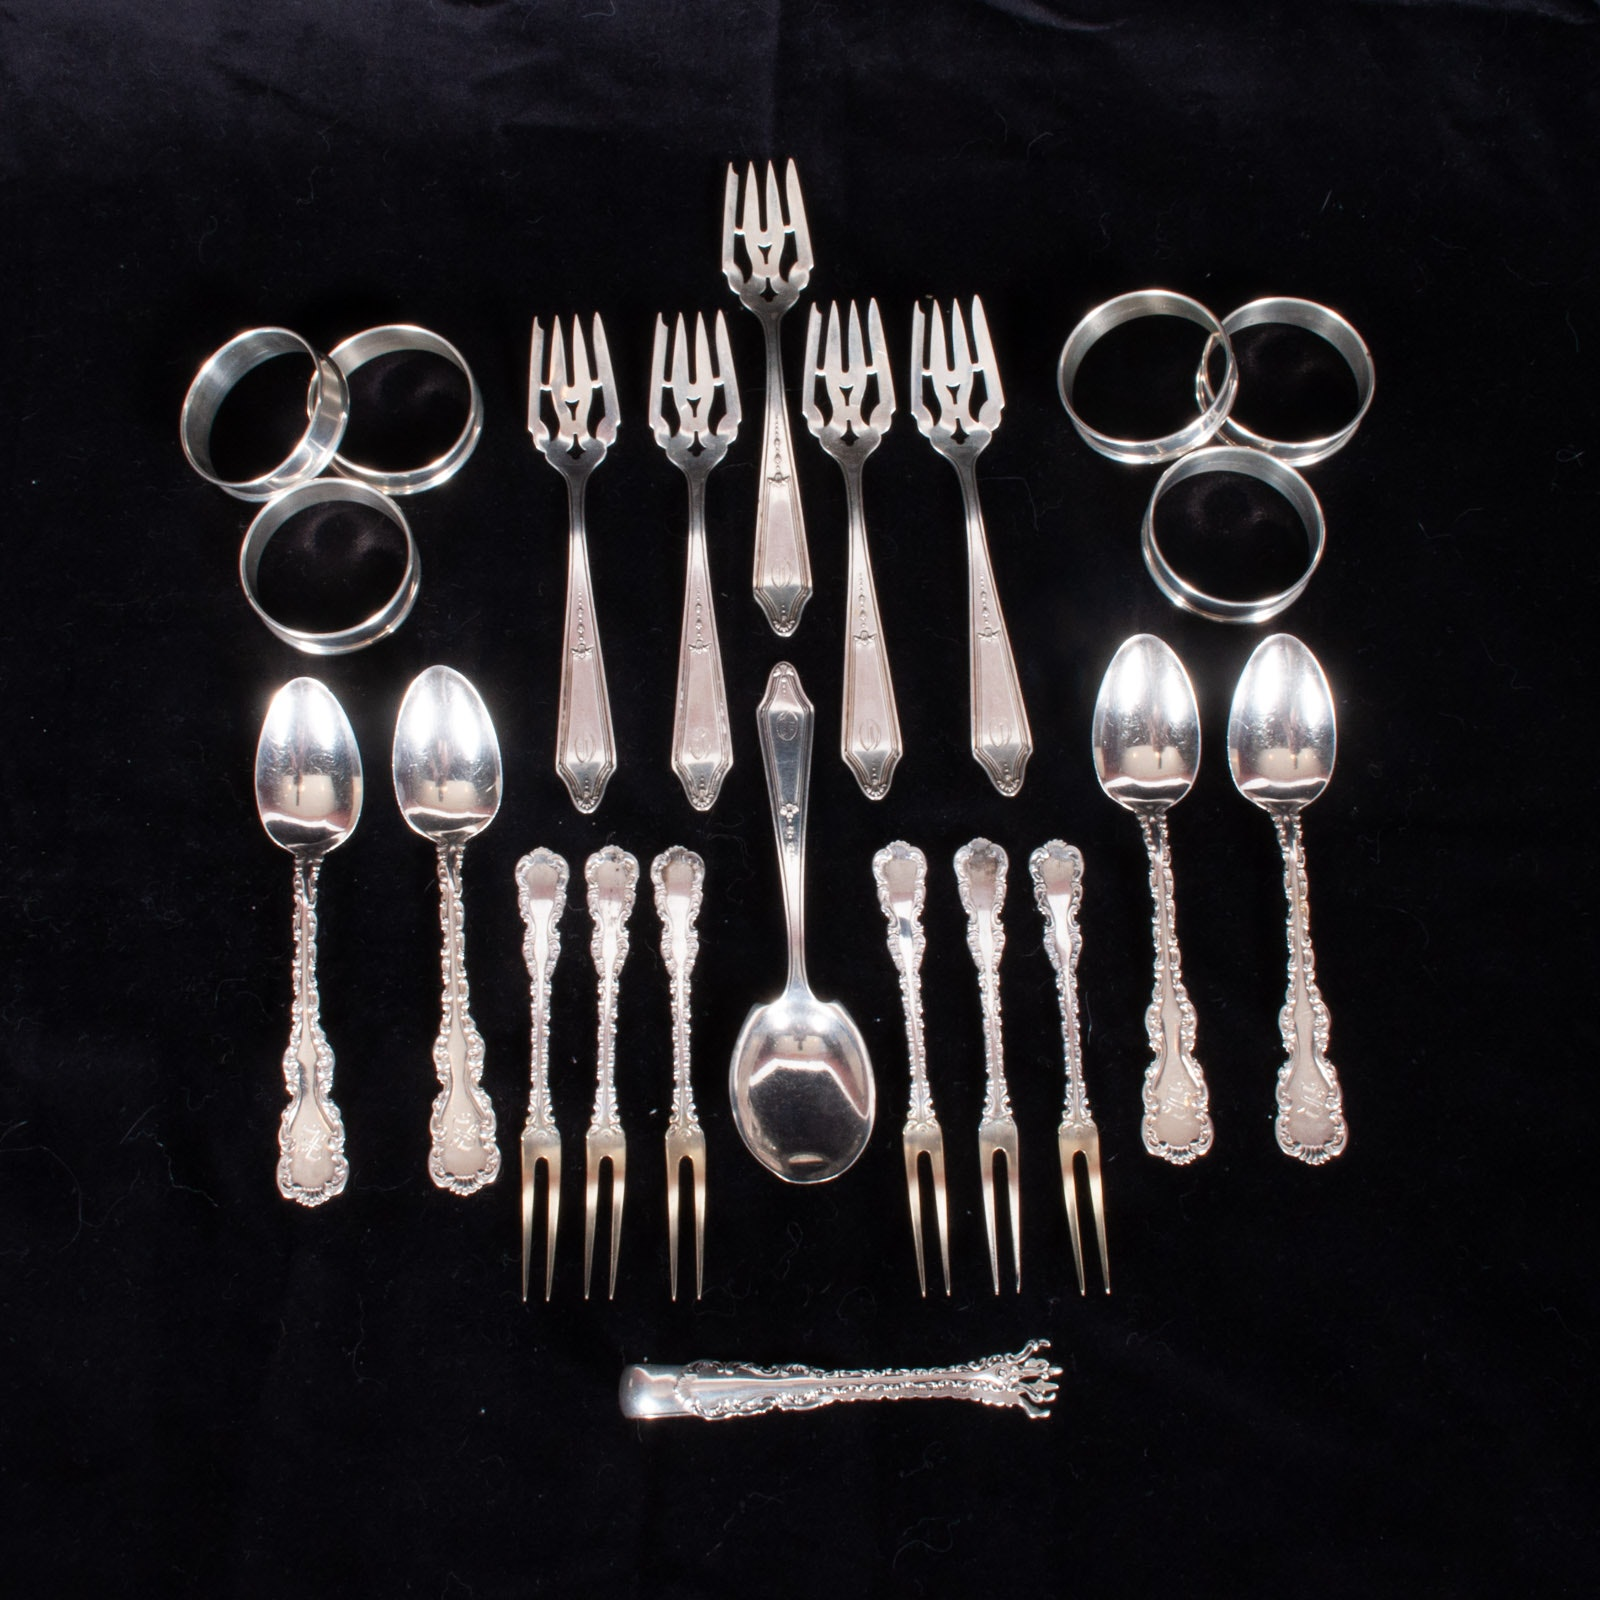 Sterling Silver Napkin Rings, Demitasse Spoons, Sugar Tongs and Two Tine Forks